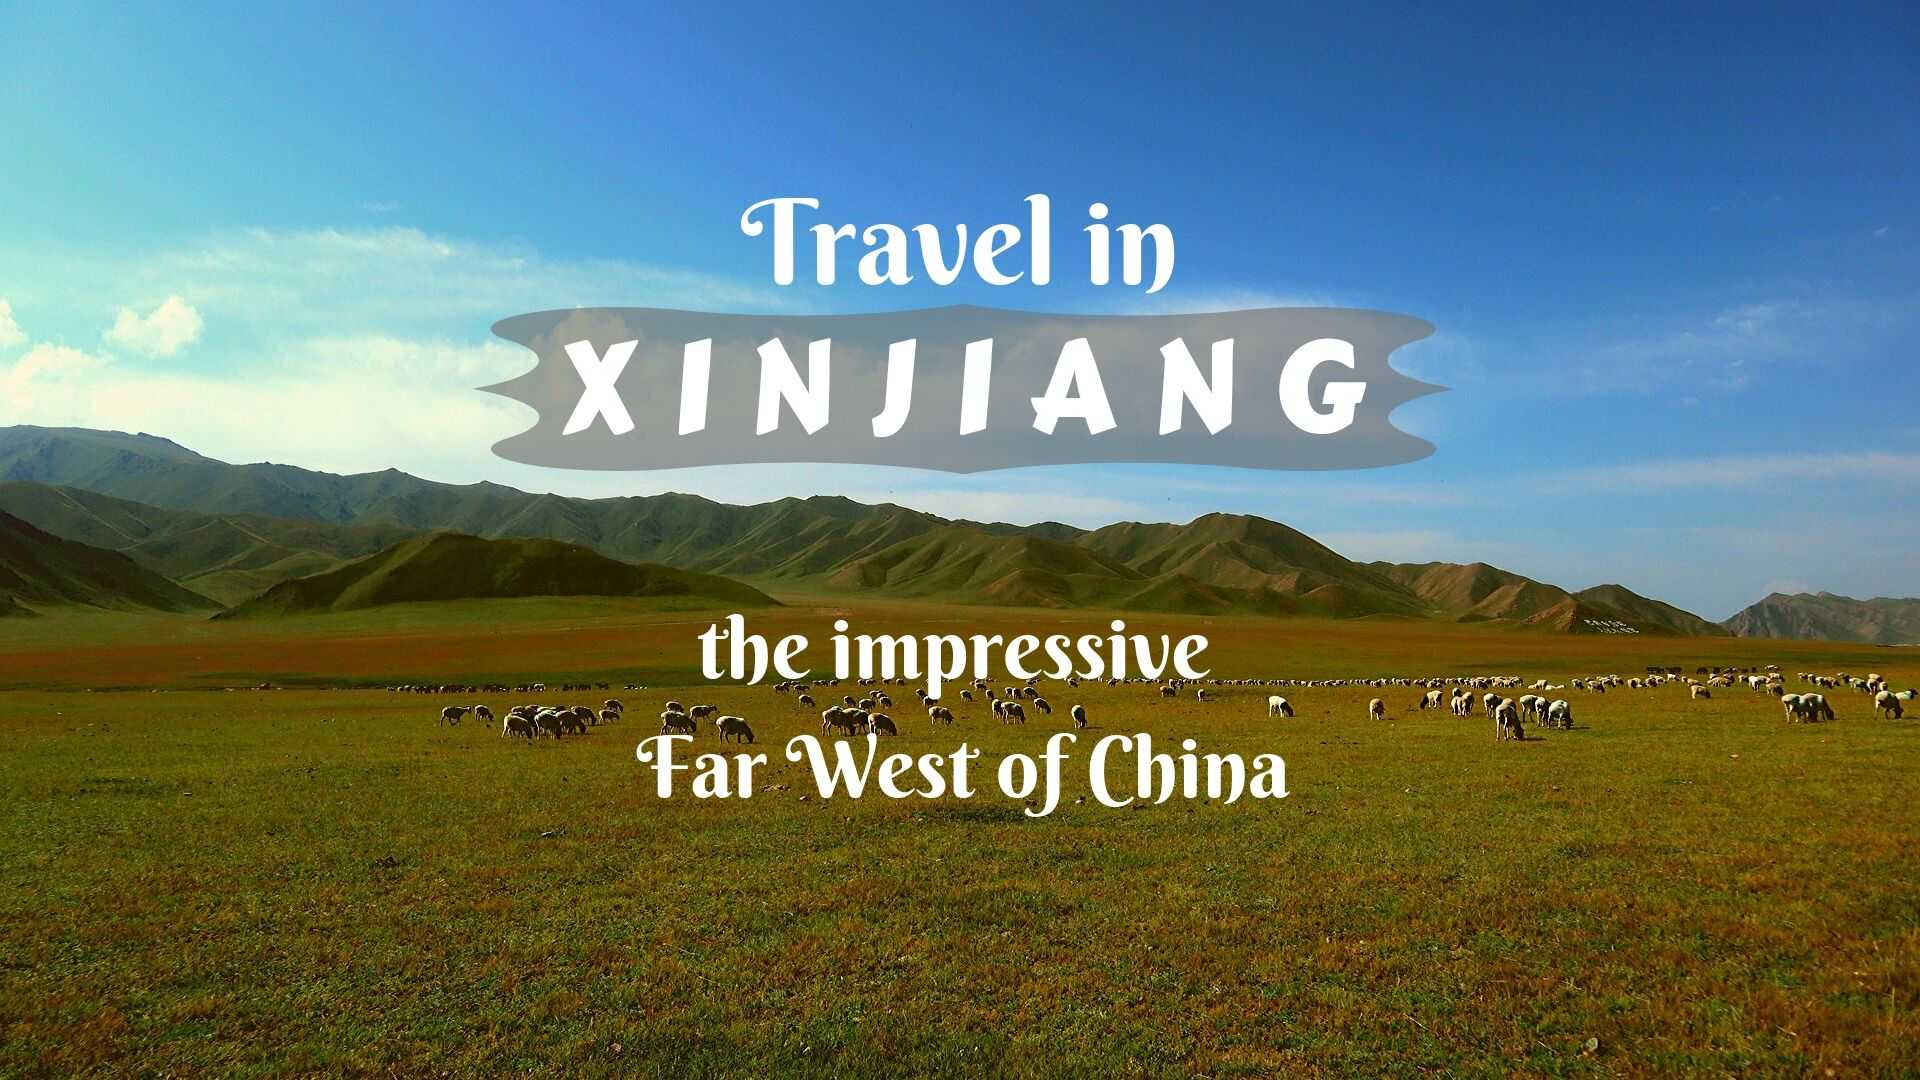 Travel in Xinjiang- the impressive Far West of China